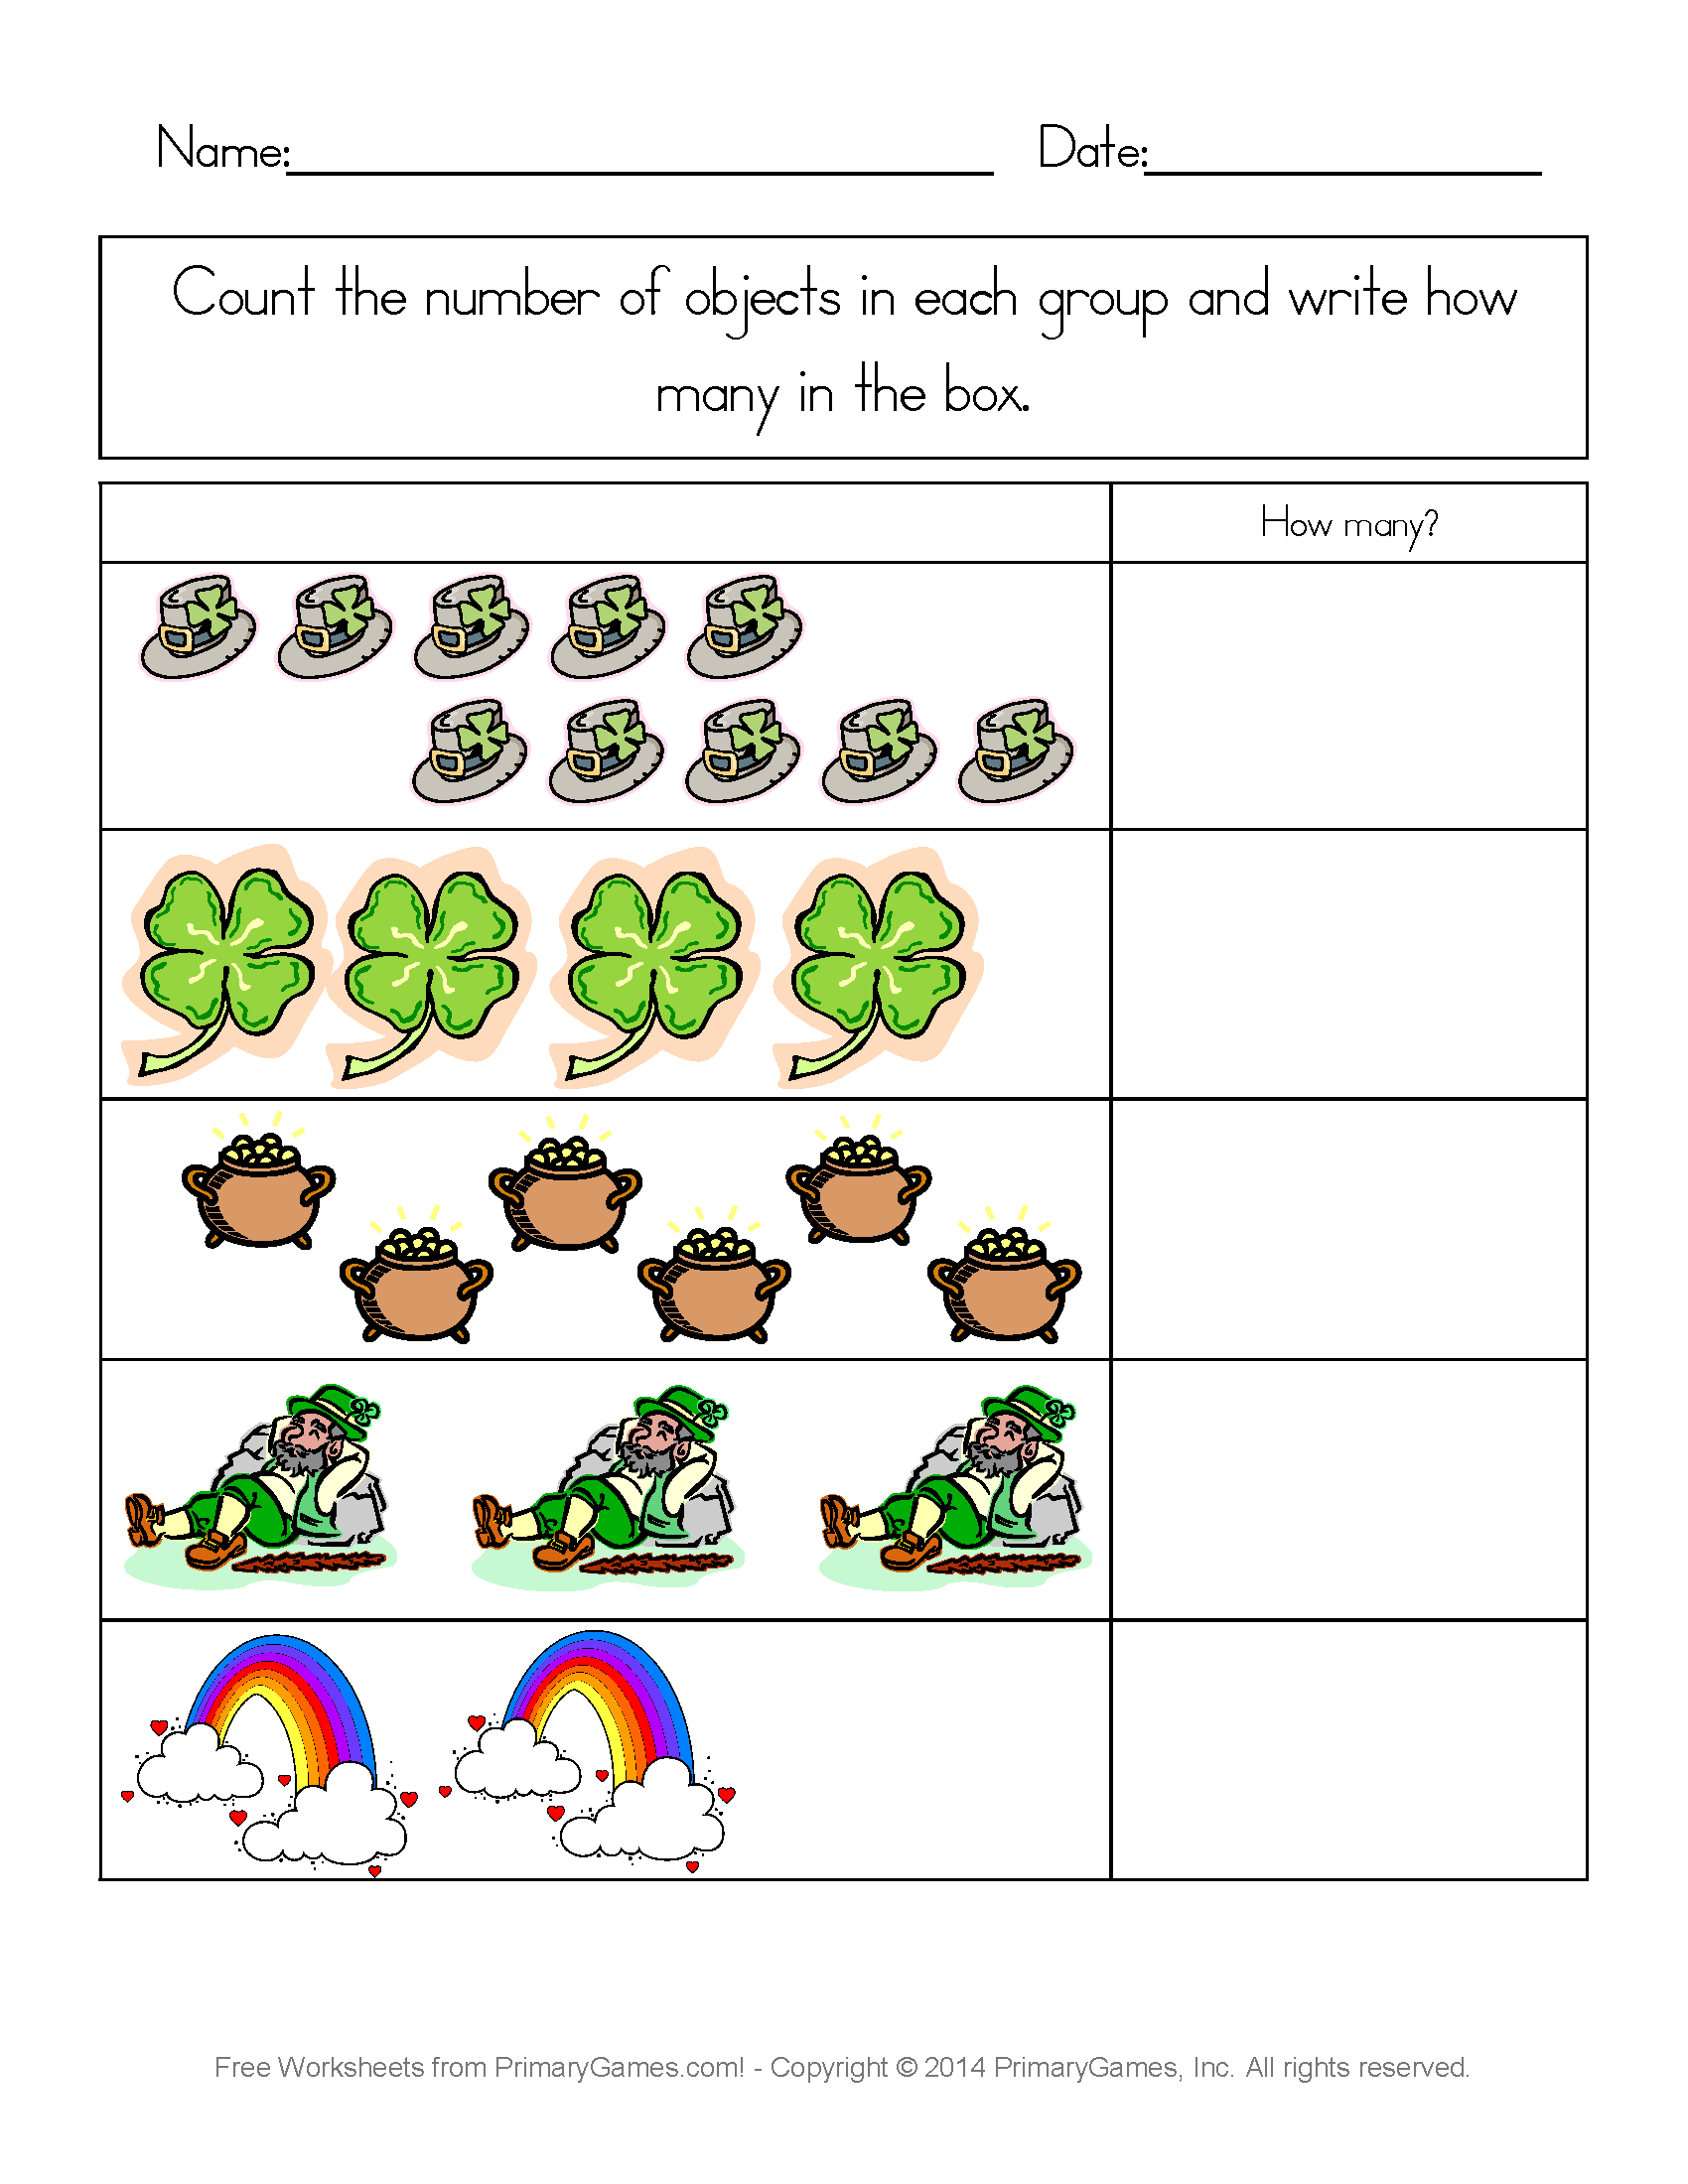 photo regarding St Patrick's Day Worksheets Free Printable called St. Patricks Working day Worksheets: St. Patricks Working day Counting